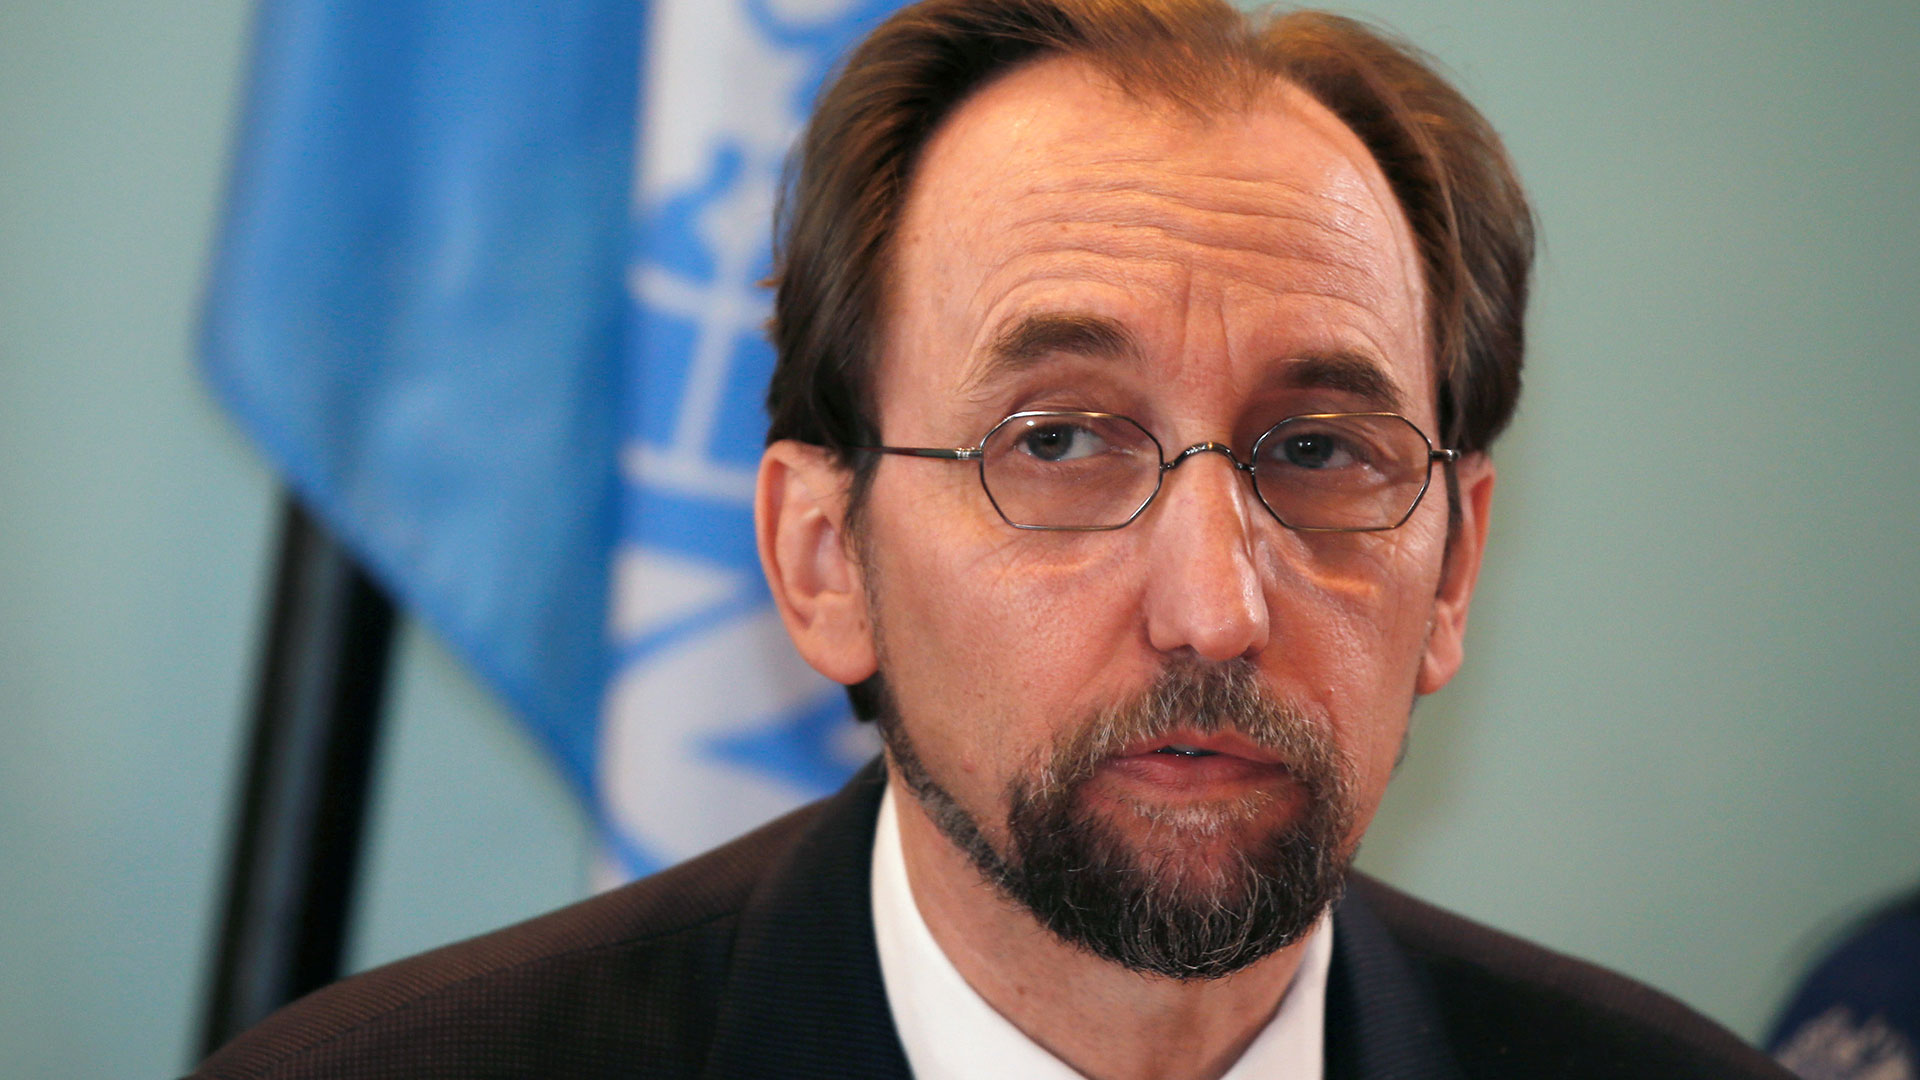 Zeid Ra to Hussein, UN High Commissioner for Human Rights until September 2018 (Reuters)